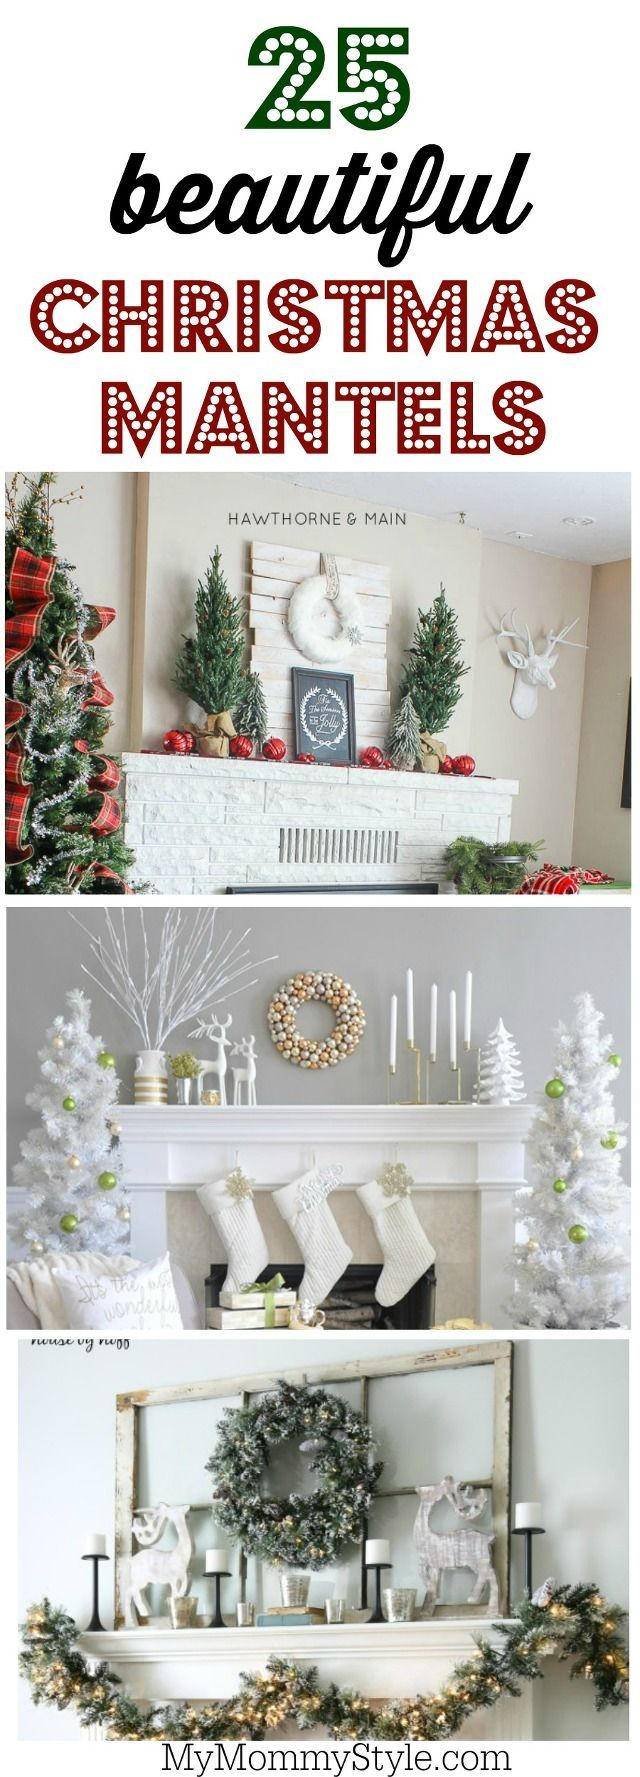 2542 best Christmas images on Pinterest | Christmas time, Merry ...